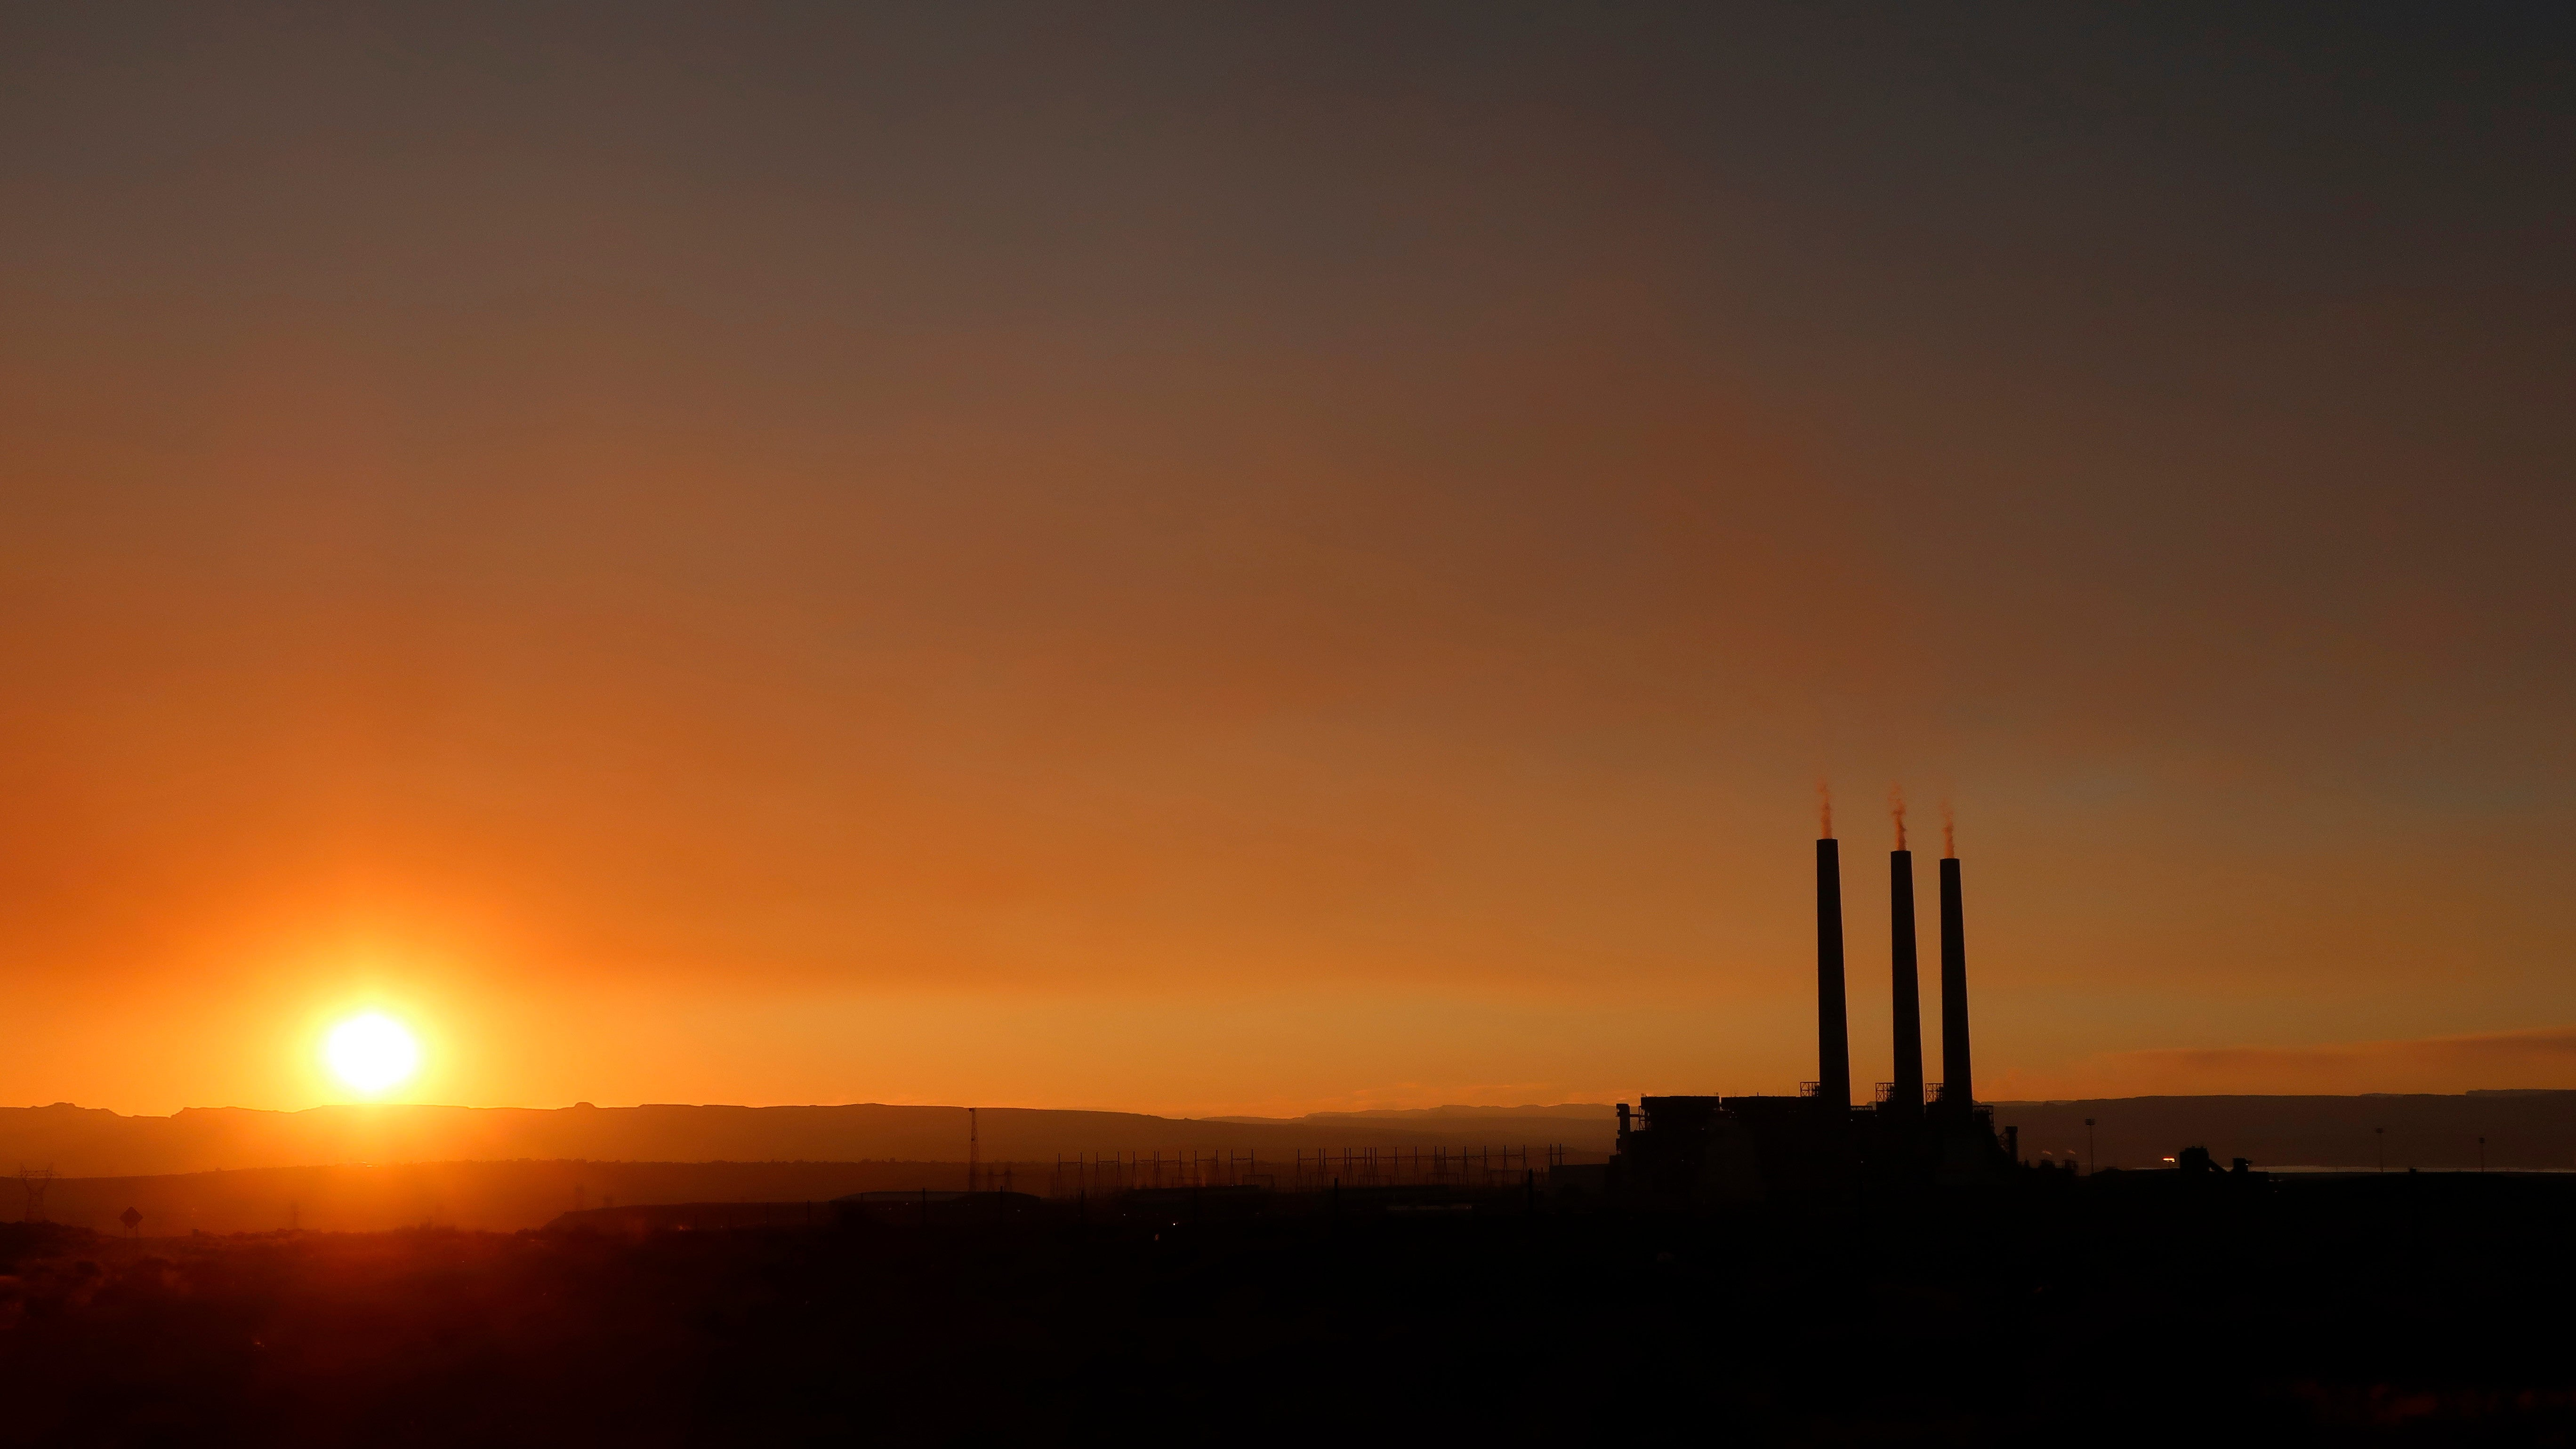 The Closure Of The West's Largest Coal Plant Could Be A Test For The Green New Deal